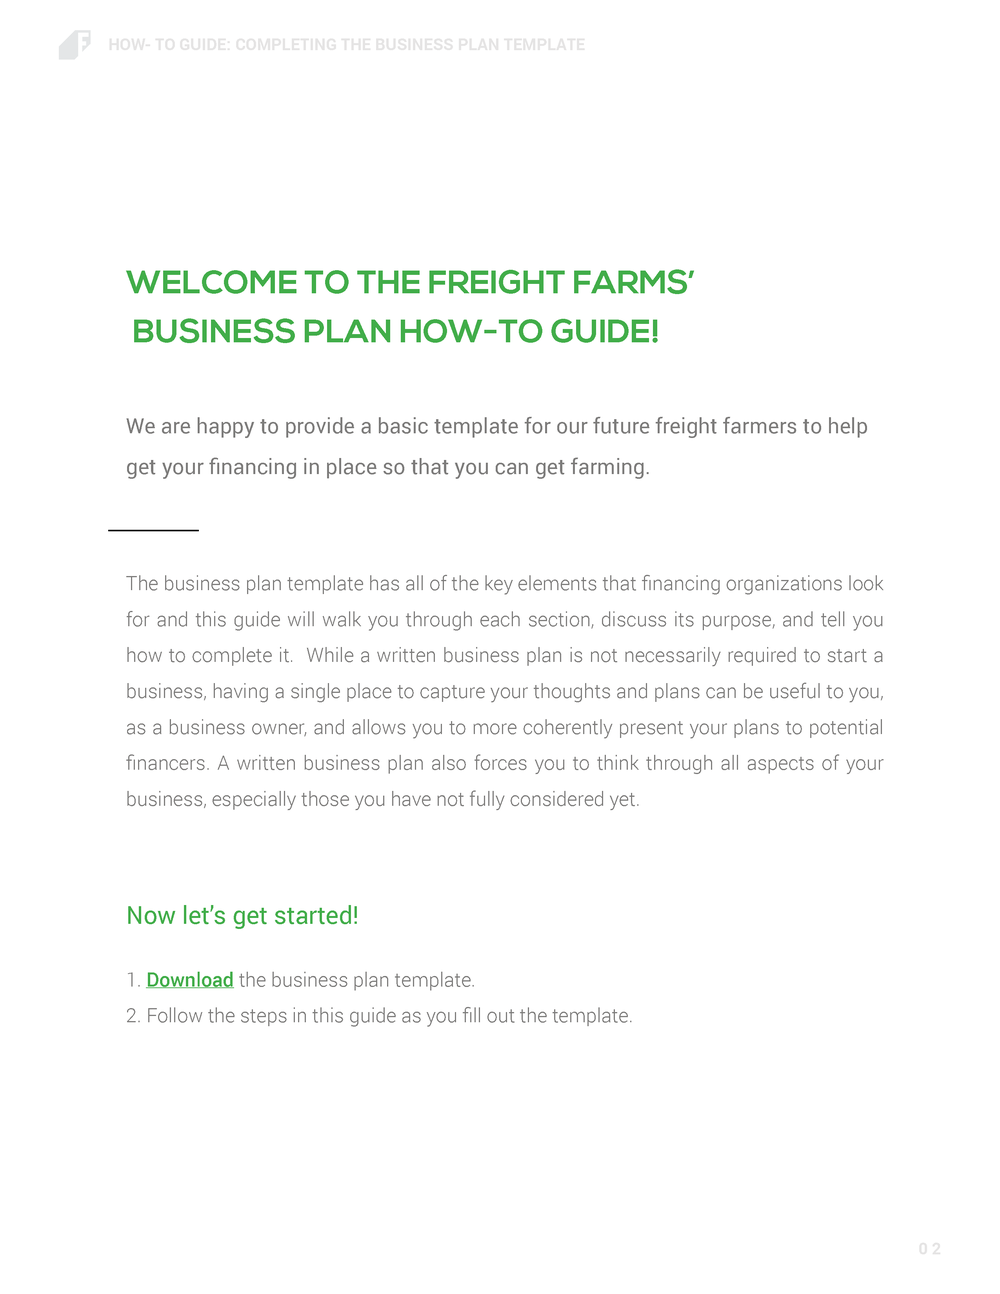 Business guide freight farms booklet previewbusiness 02g cheaphphosting